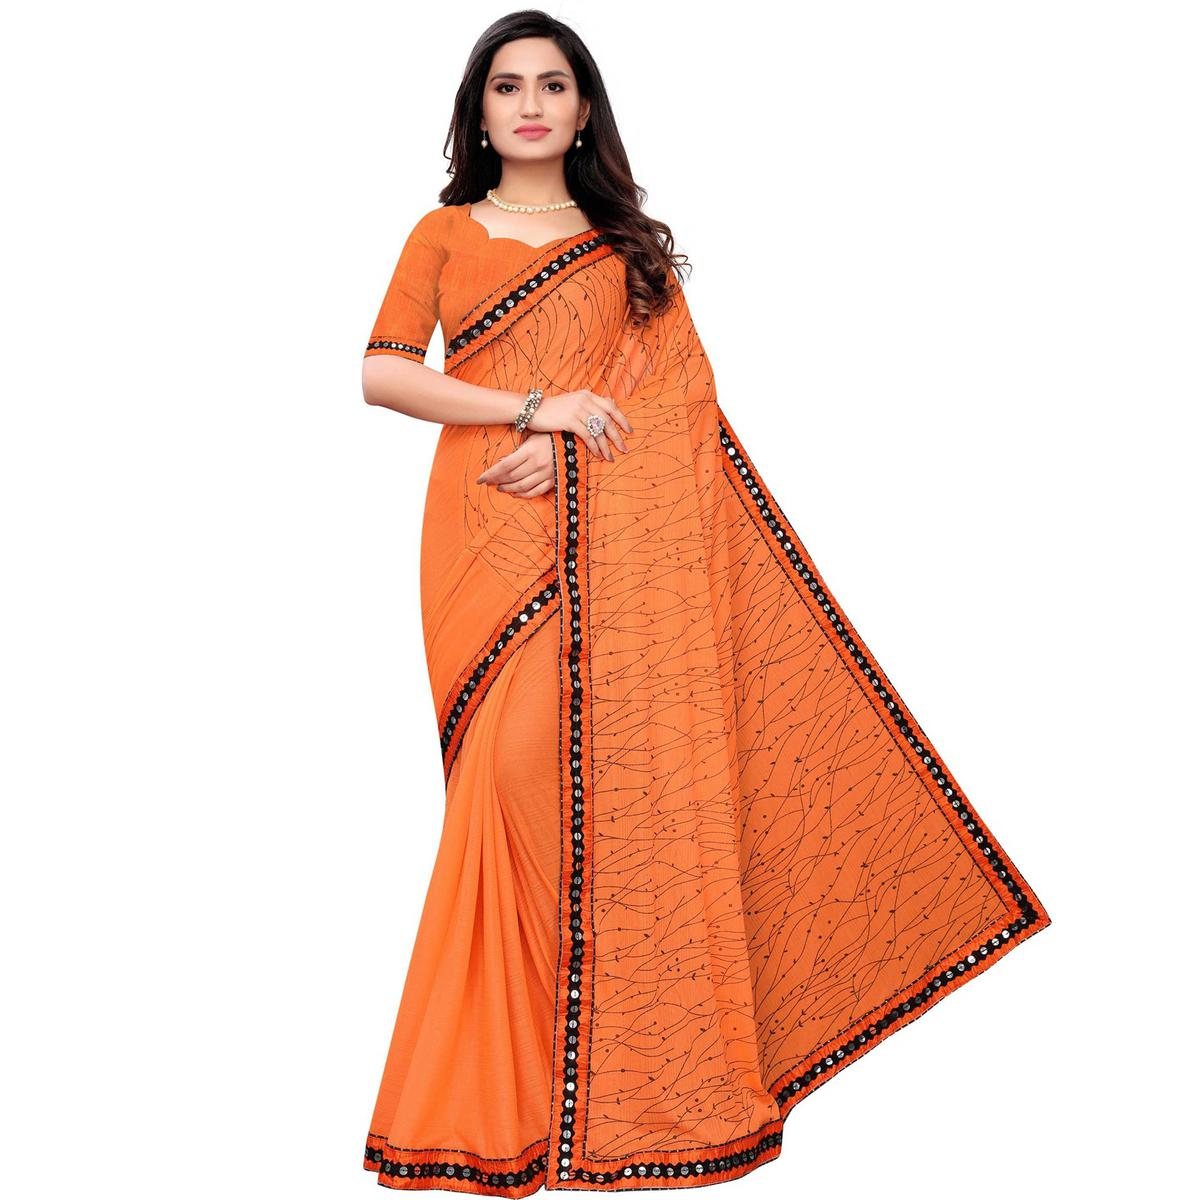 Preferable Orange Colored Party Wear Printed Lycra Blend Saree